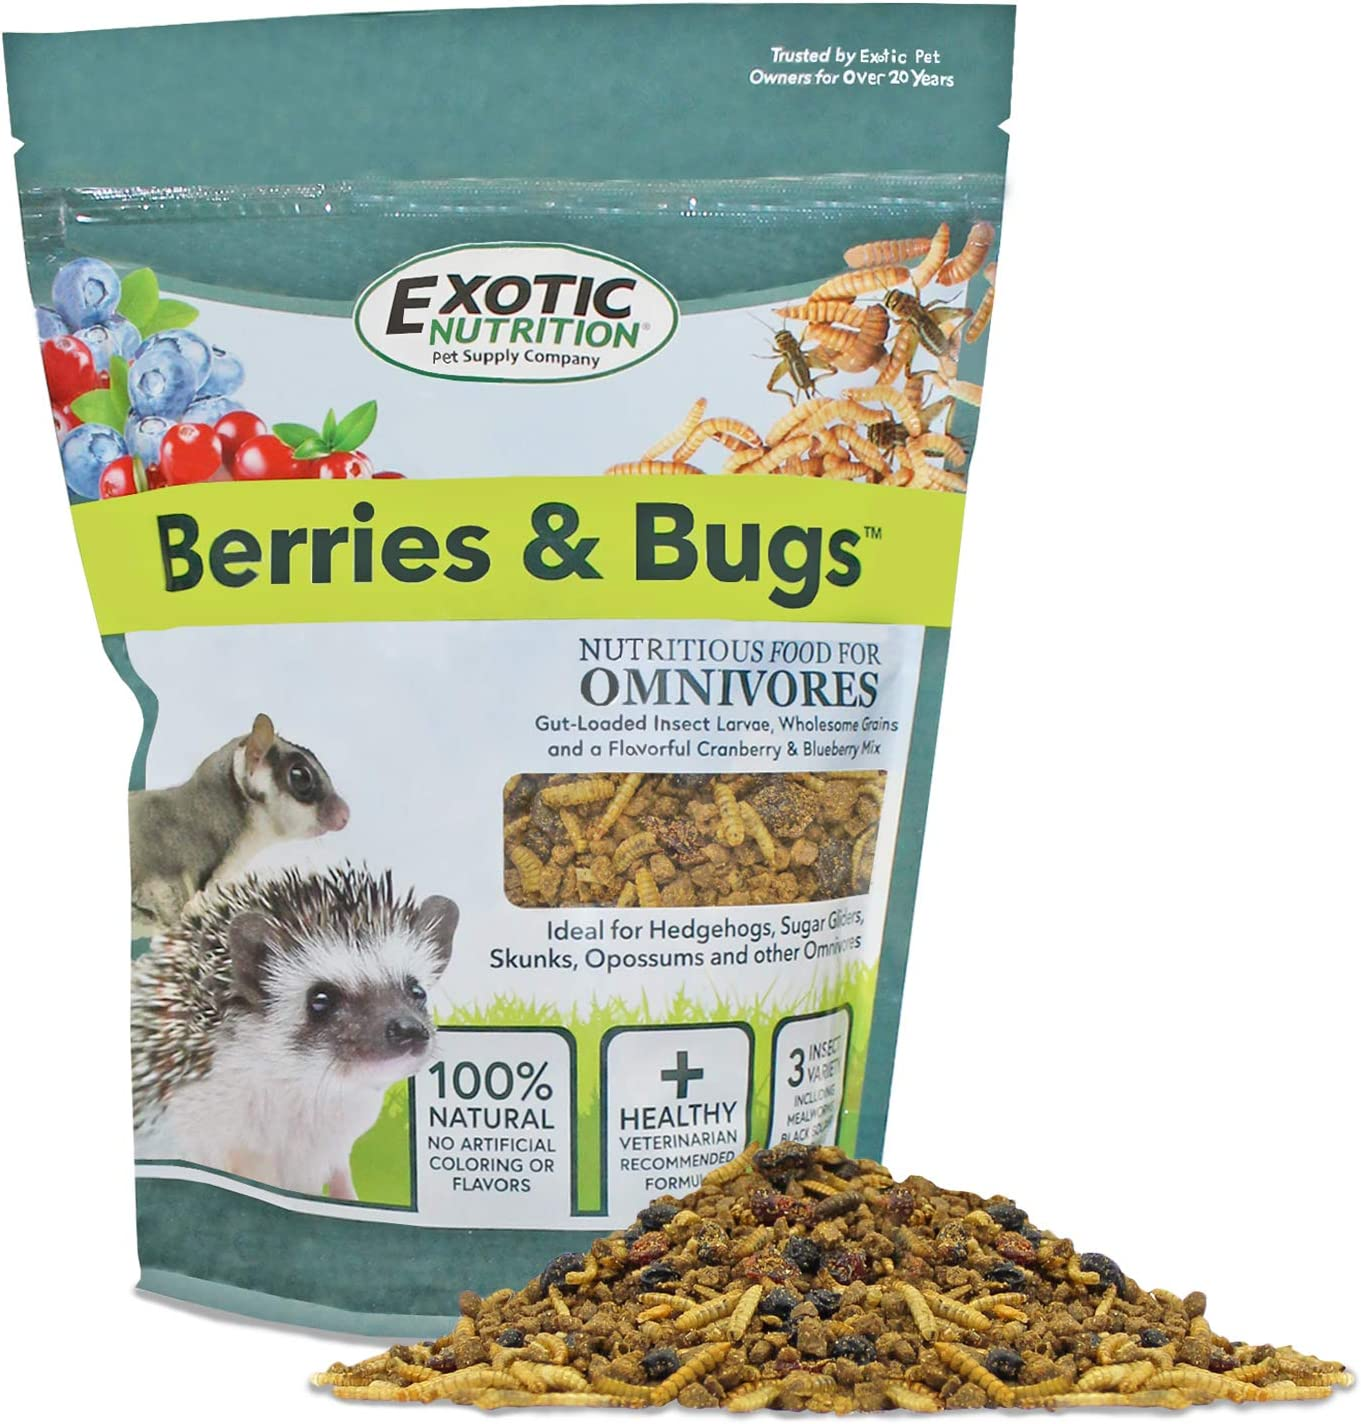 Exotic Nutrition Berries & Bugs - All Natural High Protein High Fiber Food for Hedgehogs, Skunks, Opossums, Sugar Gliders - Universal Insectivore Diet with Fruit, Gut-Loaded Insects, Healthy Vitamins